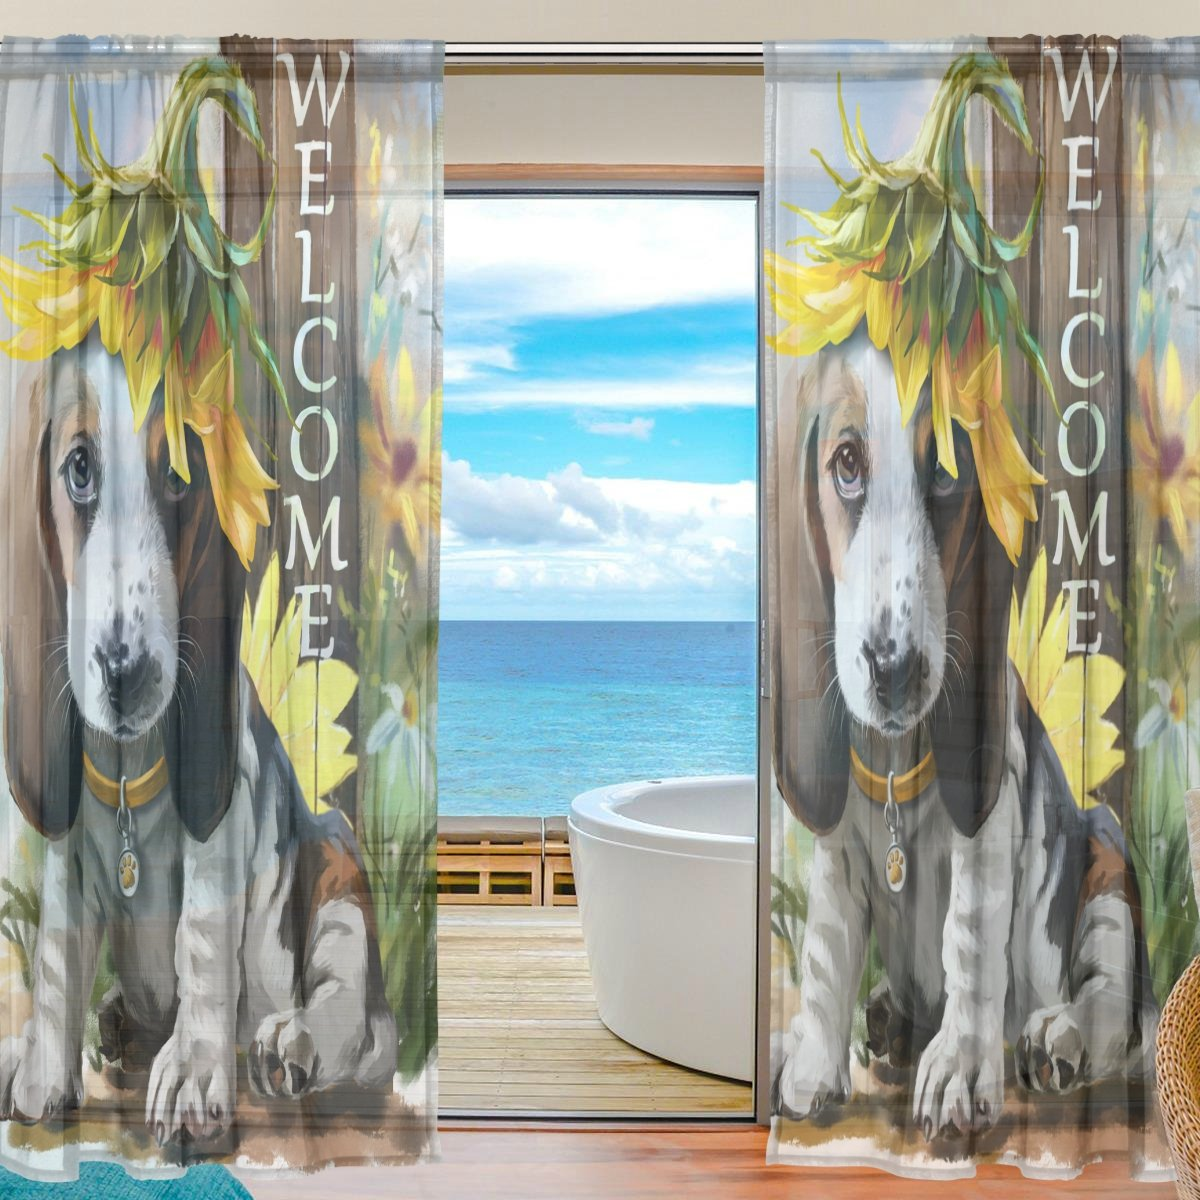 SEULIFE Window Sheer Curtain, Welcome Animal Dog Sunflower Voile Curtain Drapes for Door Kitchen Living Room Bedroom 55x84 inches 2 Panels